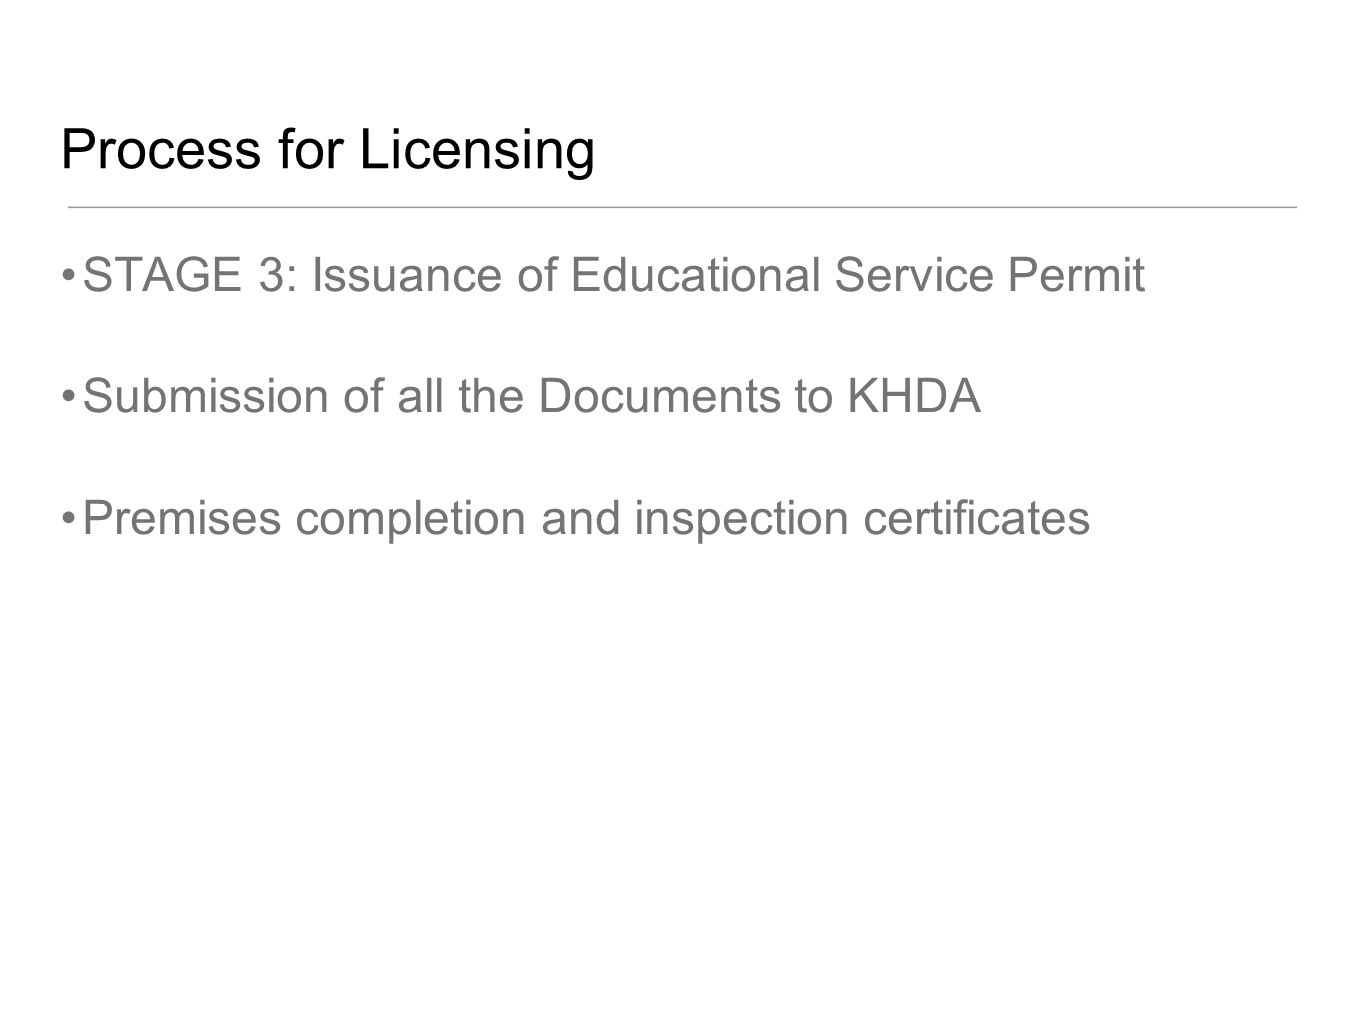 Process for Licensing STAGE 3: Issuance of Educational Service Permit Submission of all the Documents to KHDA Premises completion and inspection certificates